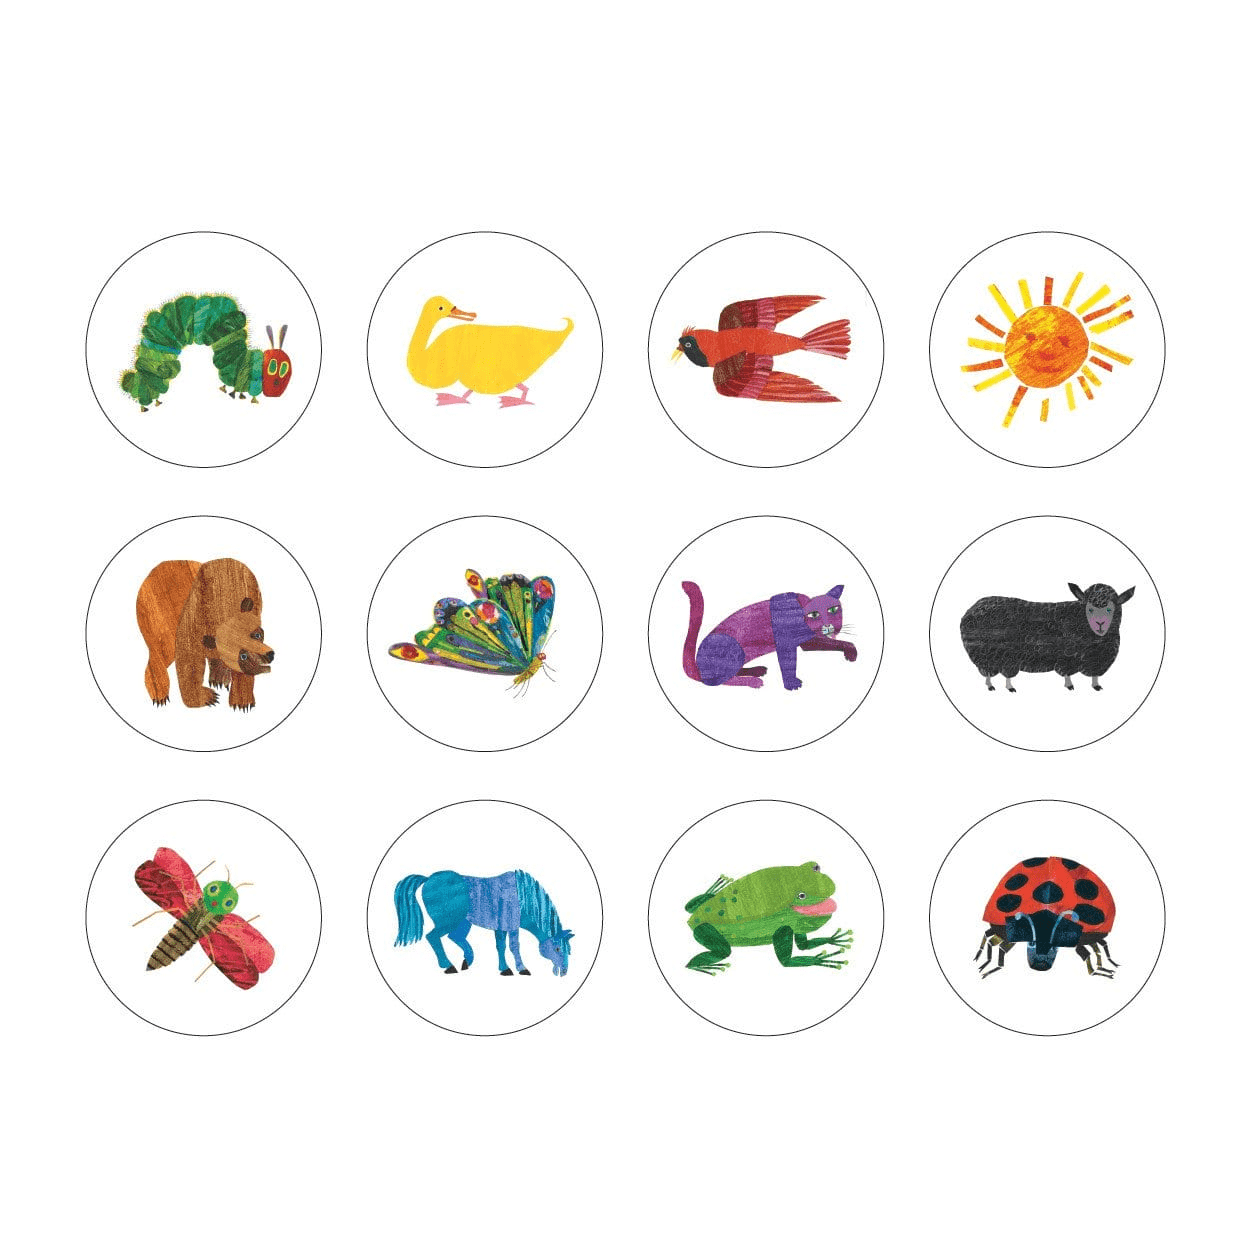 The World Of Eric Carle The Very Hungry Caterpillar And Friends Mini Memory Match Game Mini Memory Match Mudpuppy